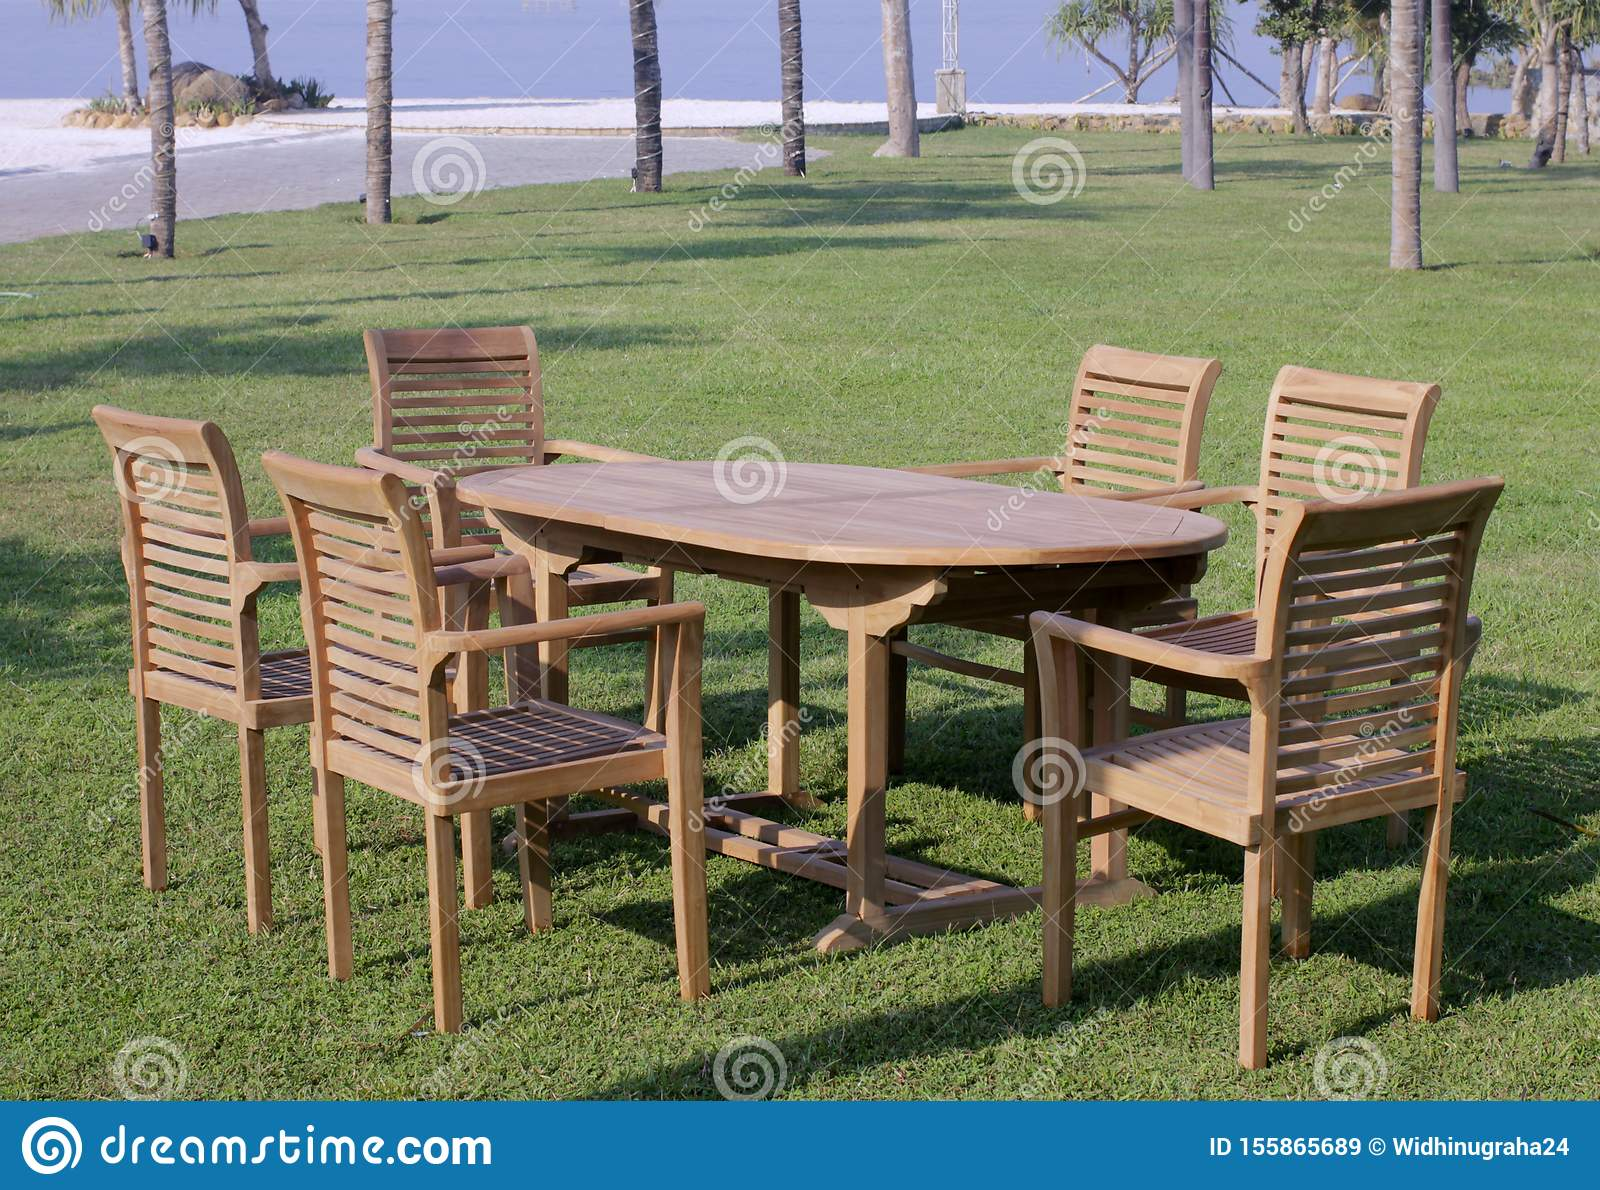 Picture of: Garden Furniture Outdoor Teak Dining Table Chairs Stock Image Image Of Minimalisfurniture Furniture 155865689